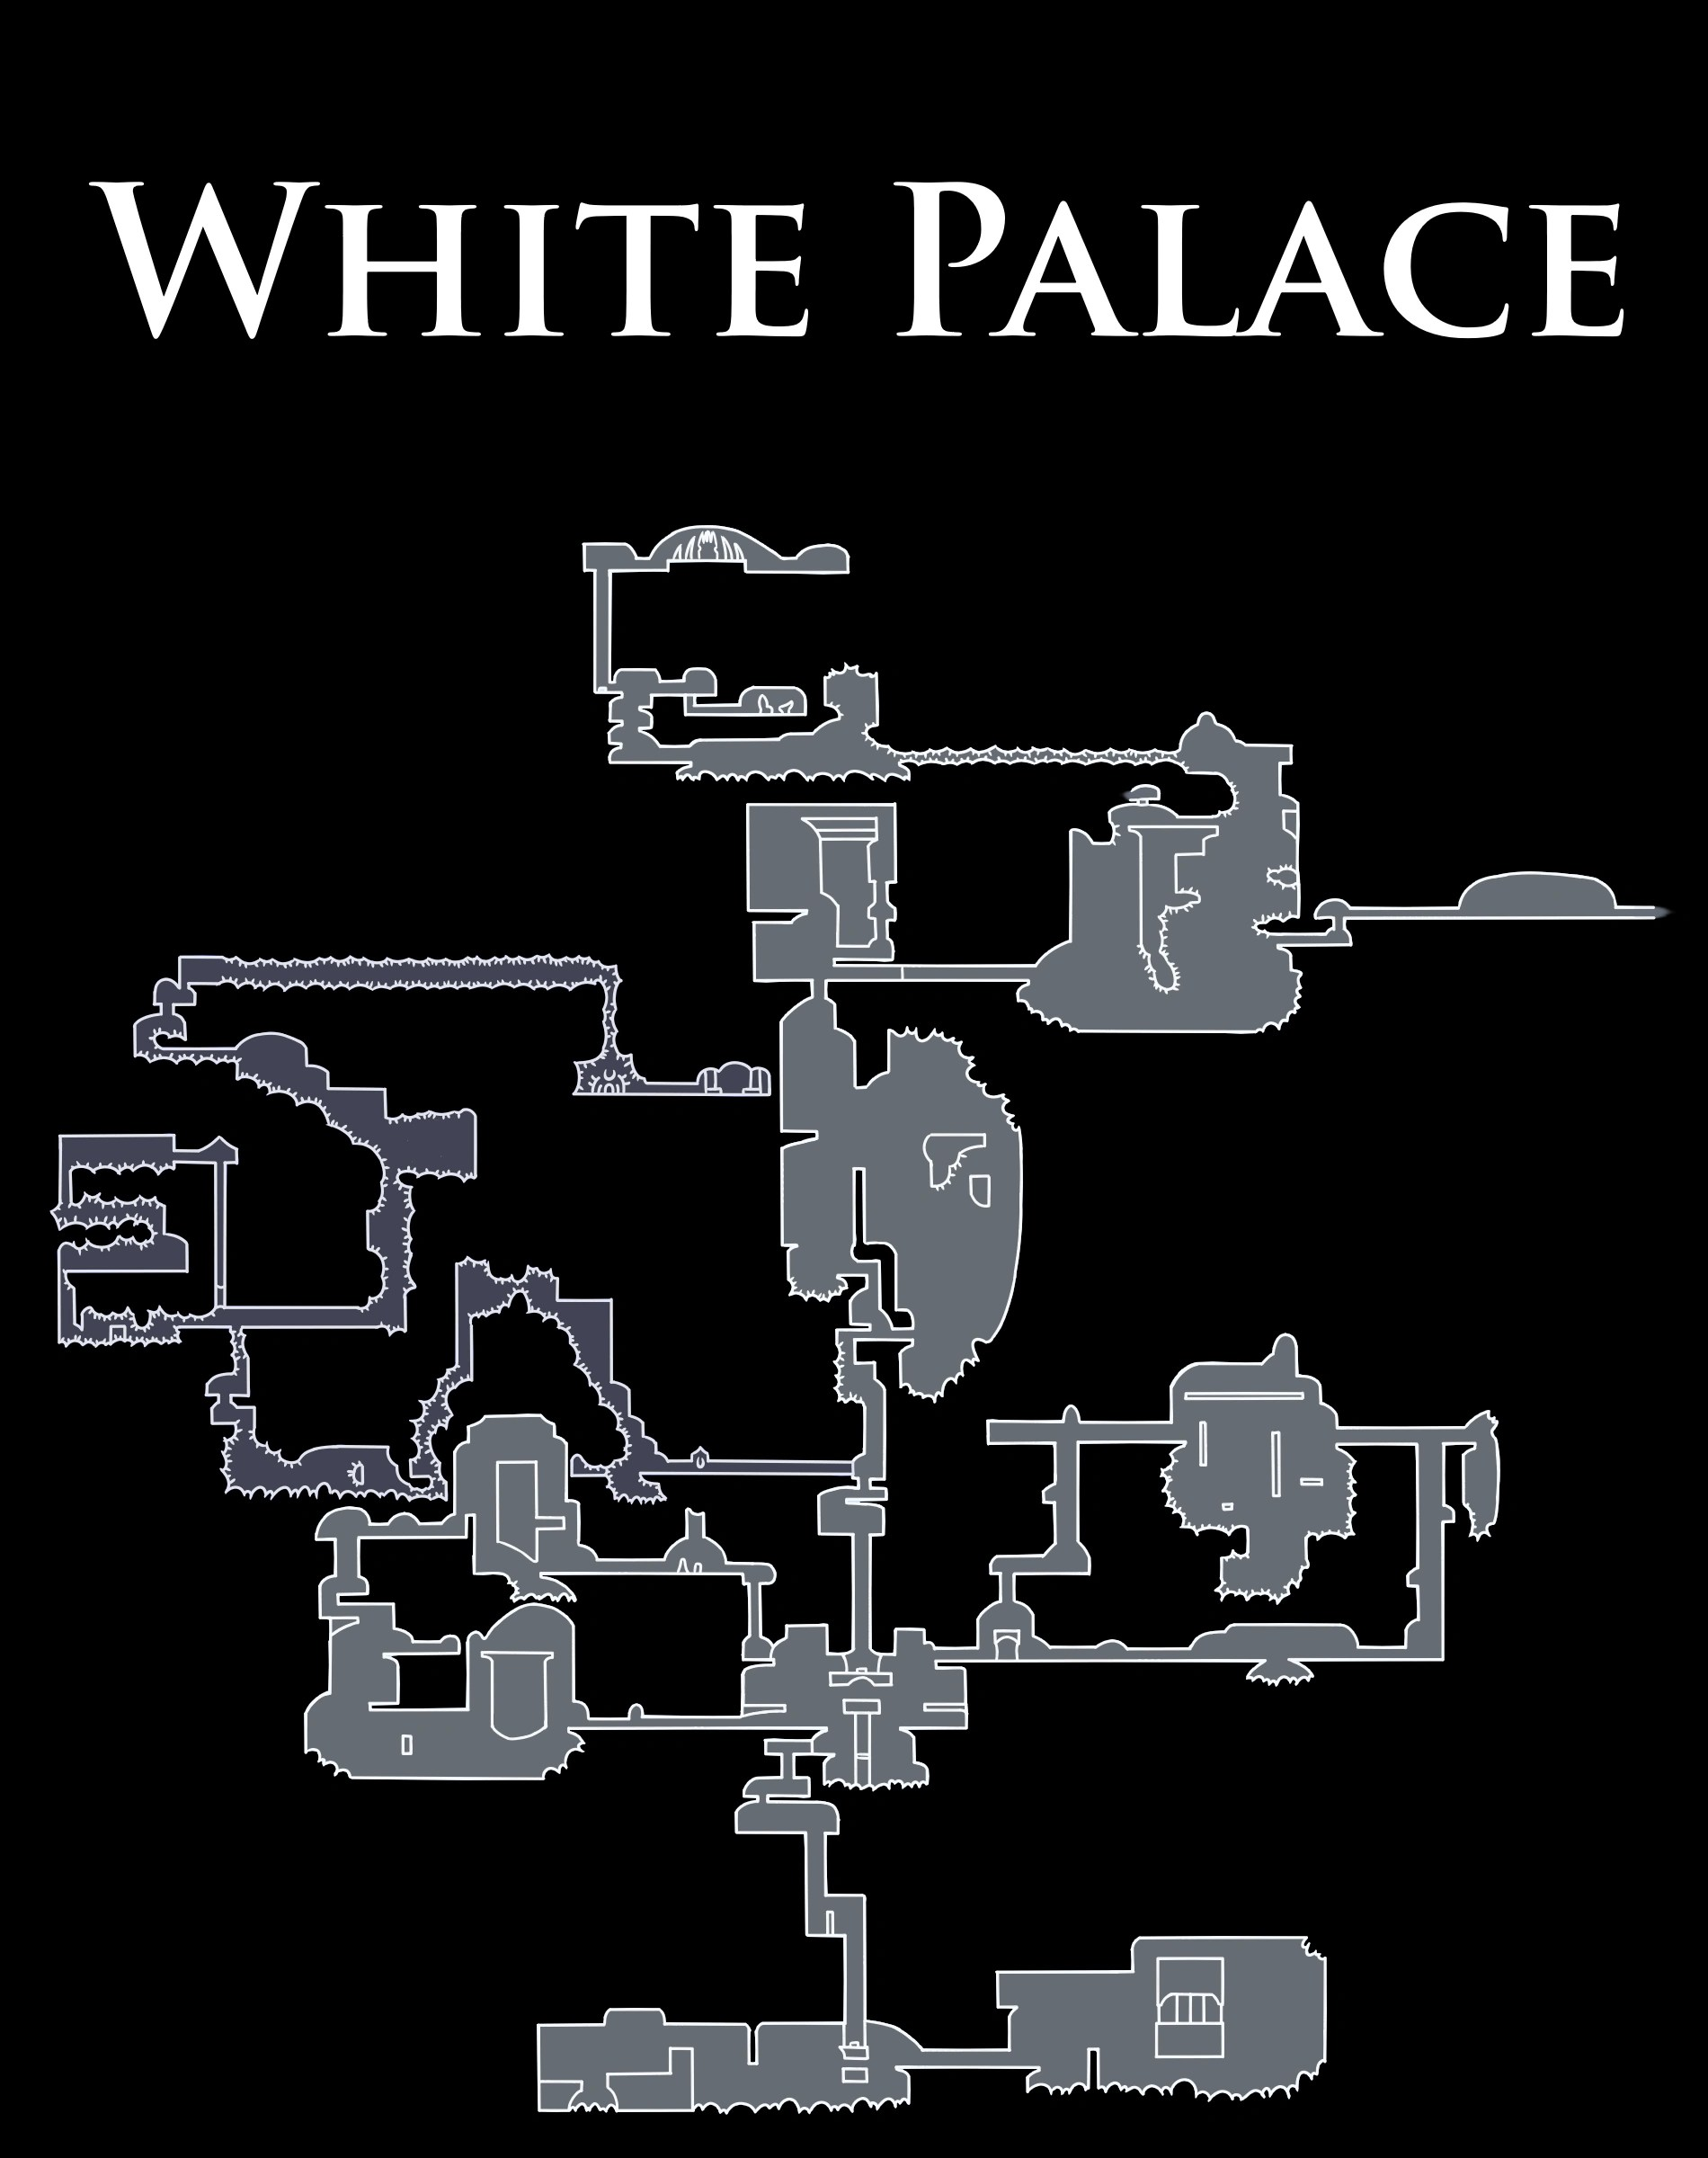 Hollow Knight White Palace Map : hollow, knight, white, palace, White, Palace, Hollow, Knight, Fandom